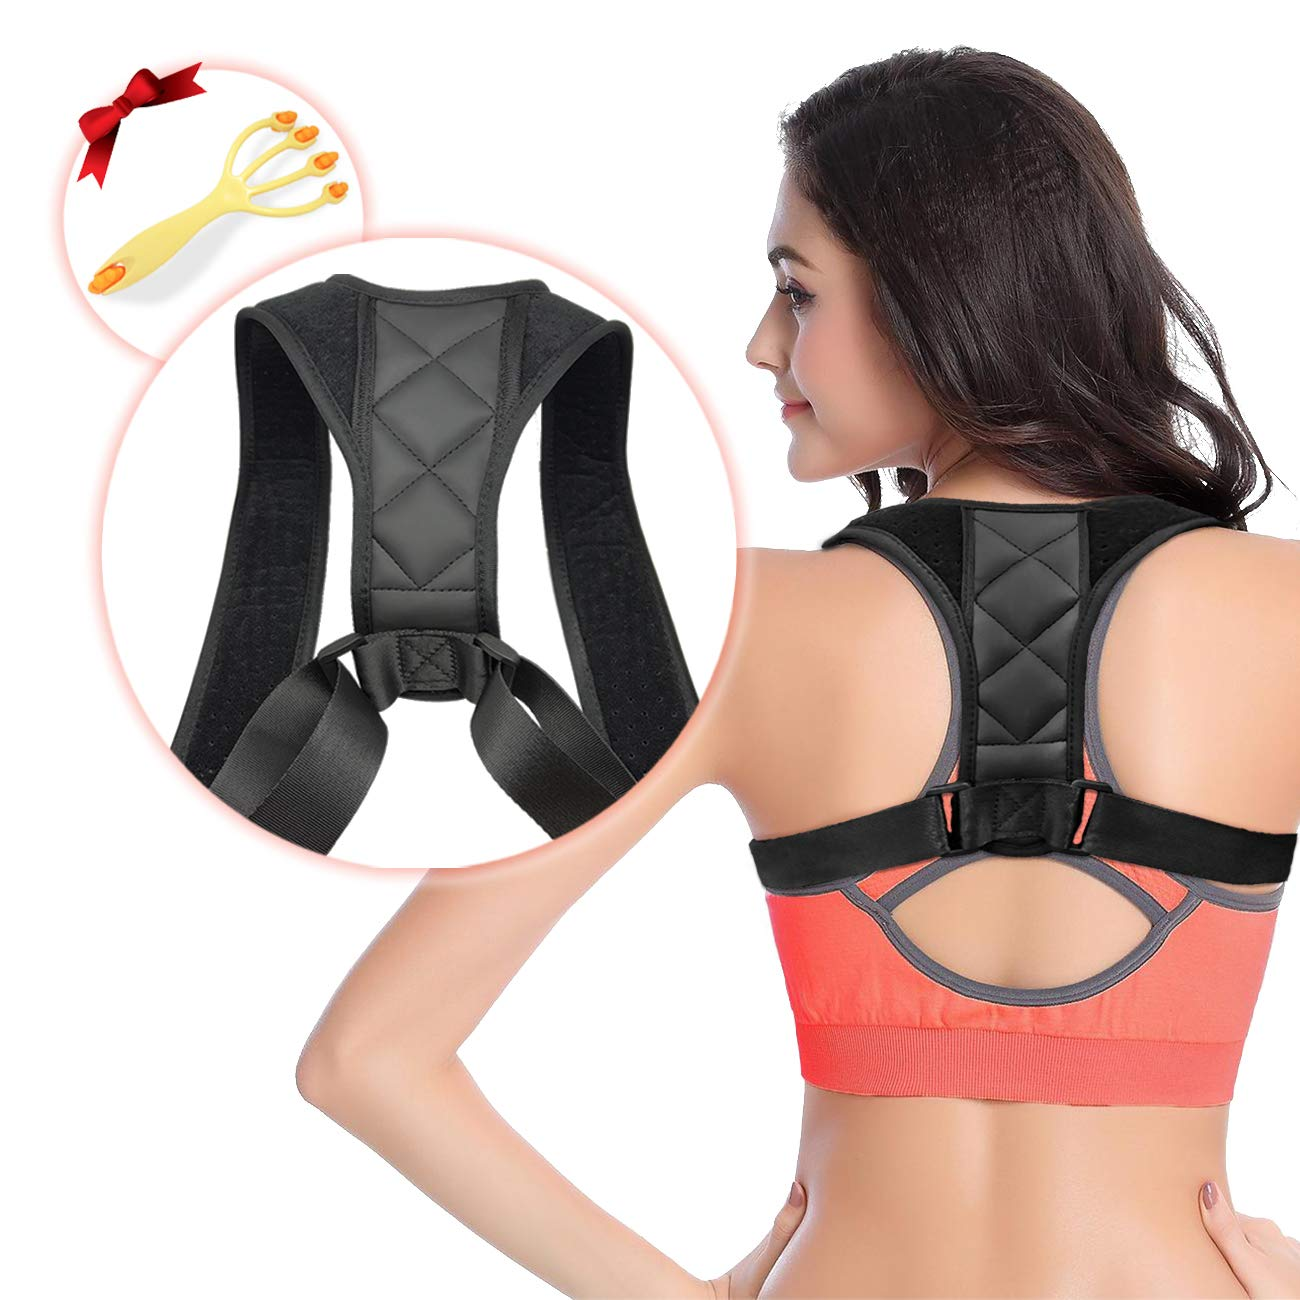 aee85fe91 Amazon.com  Back Brace Posture Corrector - S-World Kee Upper Back Support  Brace for Providing Pain Relief from Back